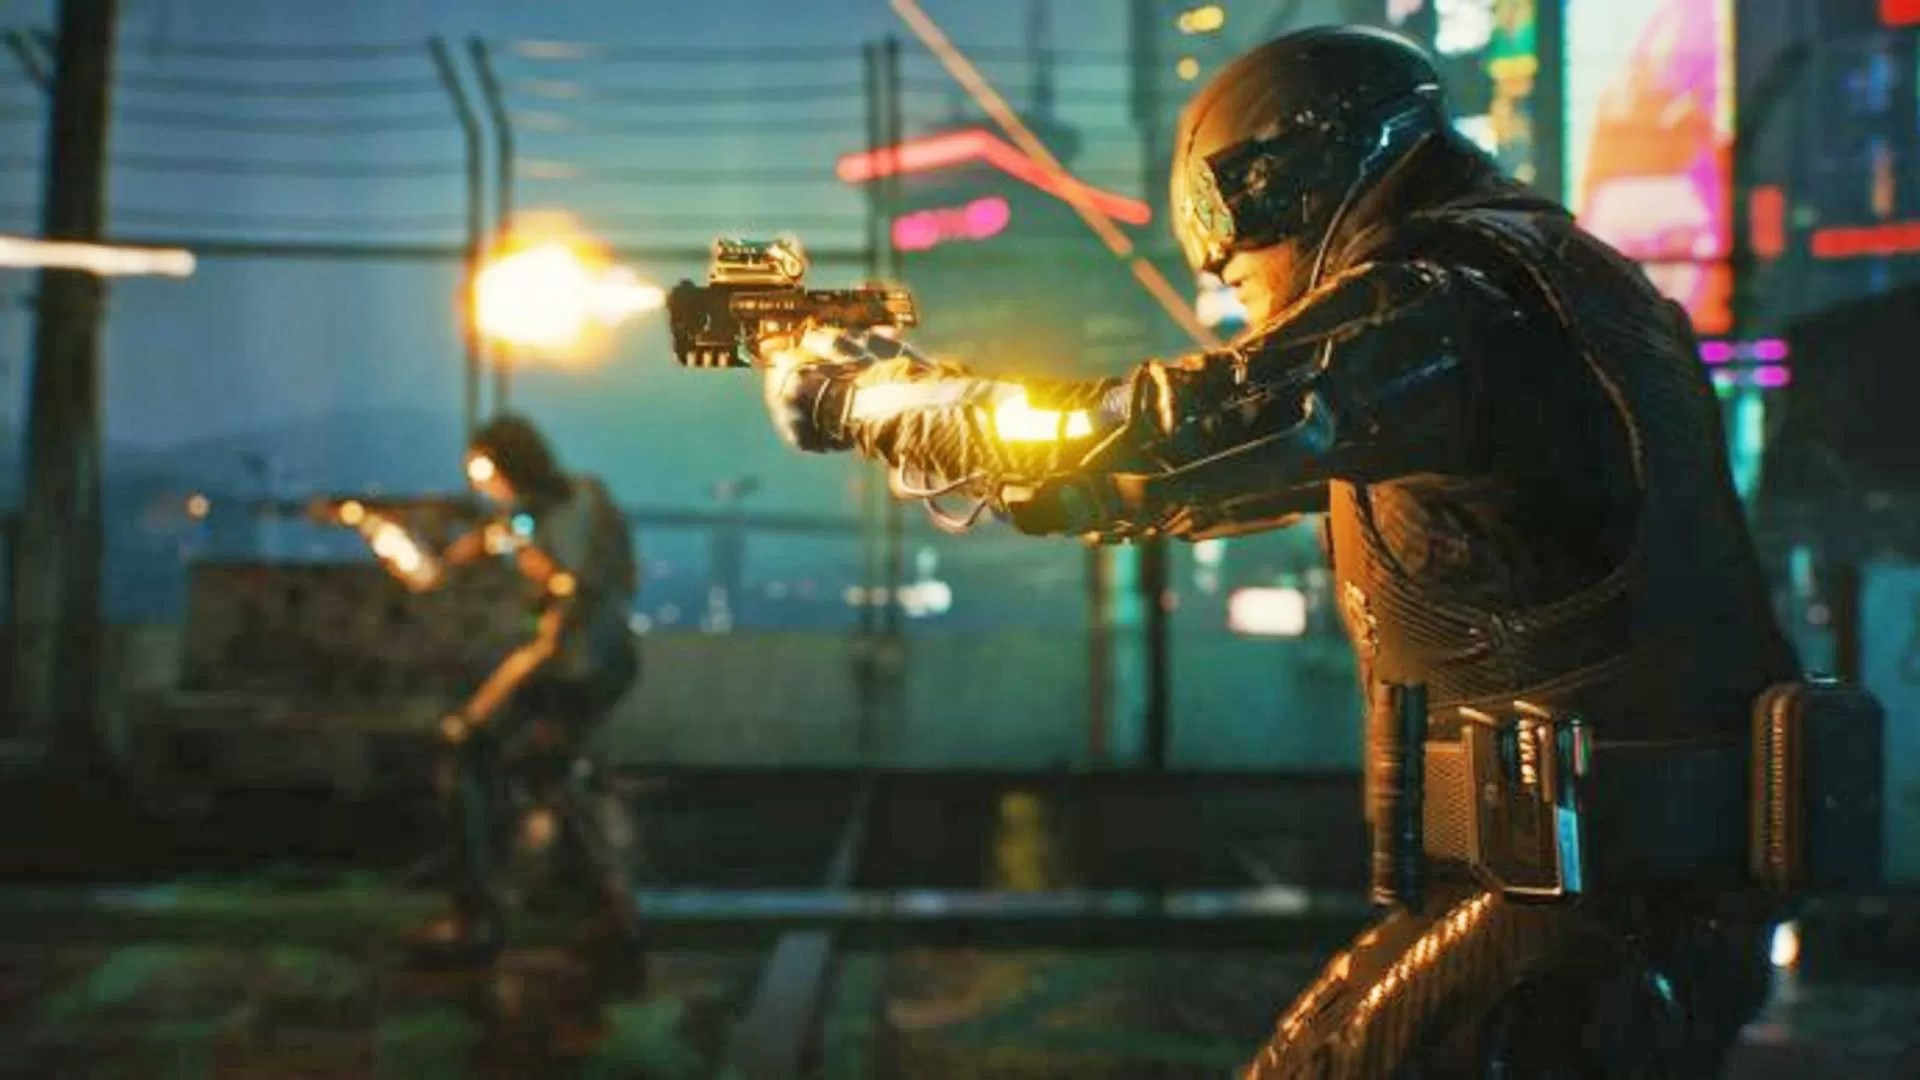 Cyberpunk weapons - from Neuromancer to Cyberpunk 2077, they're cool.